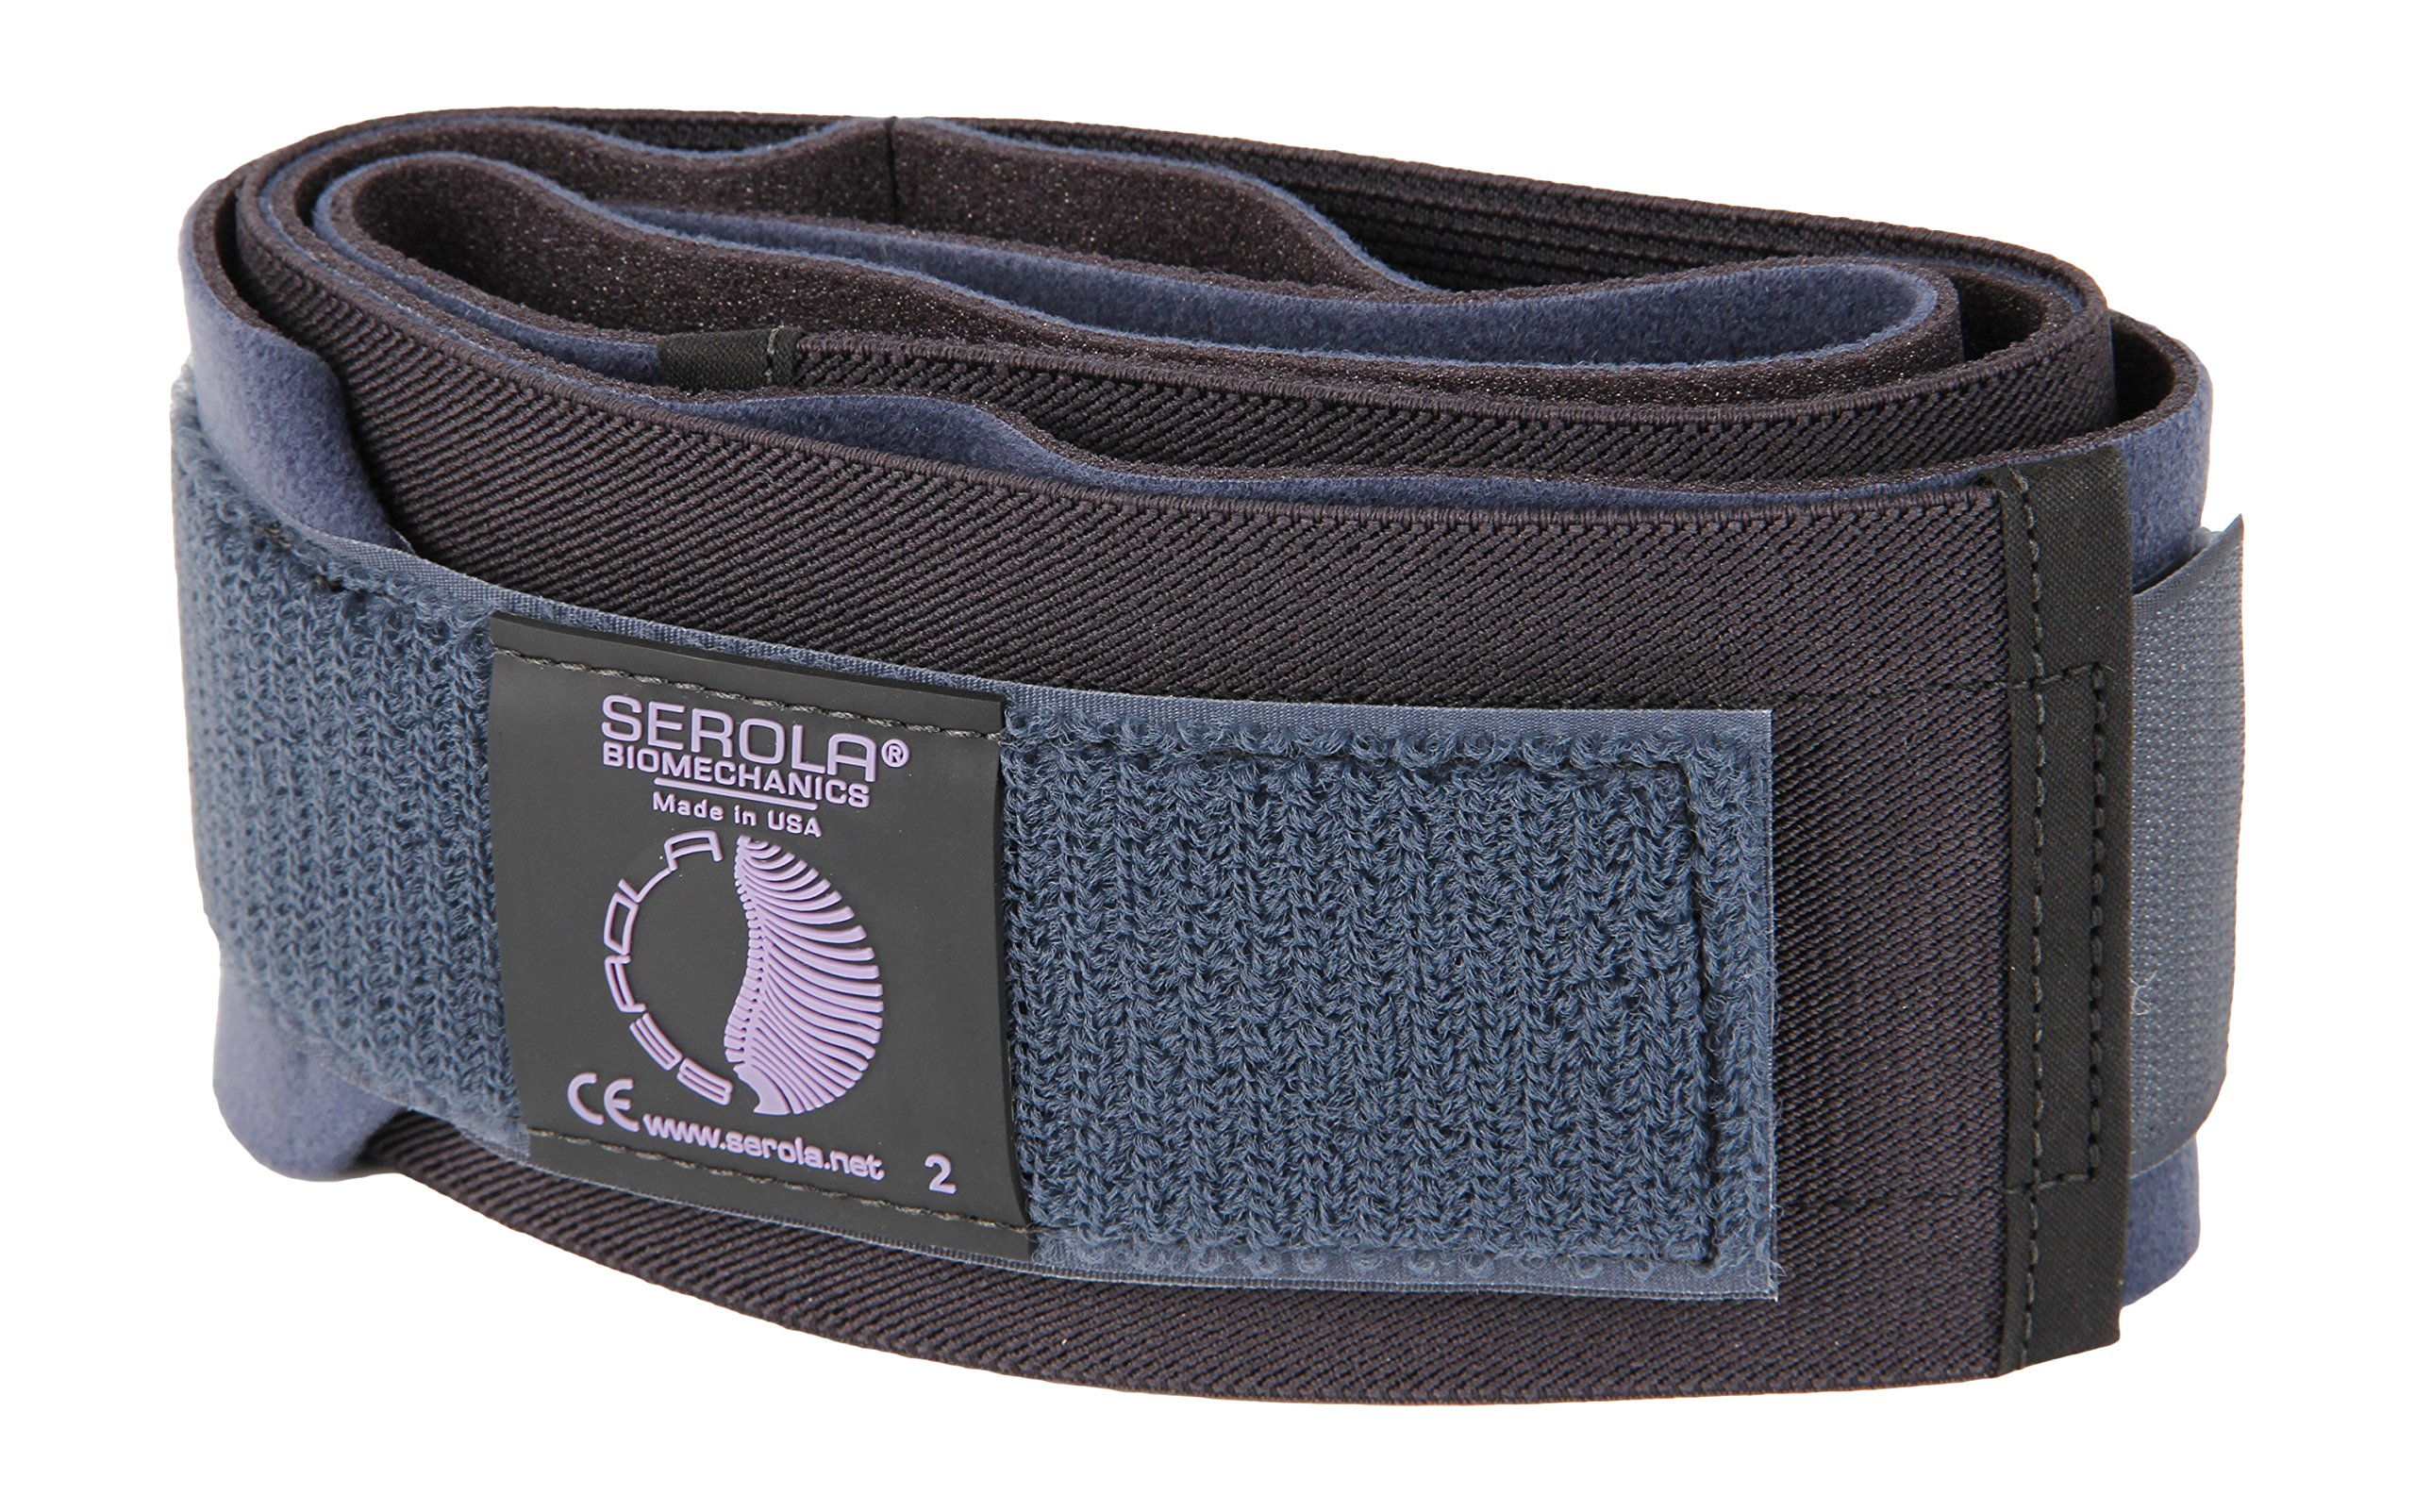 Serola Sacroiliac Hip Belt, Medium by Serola